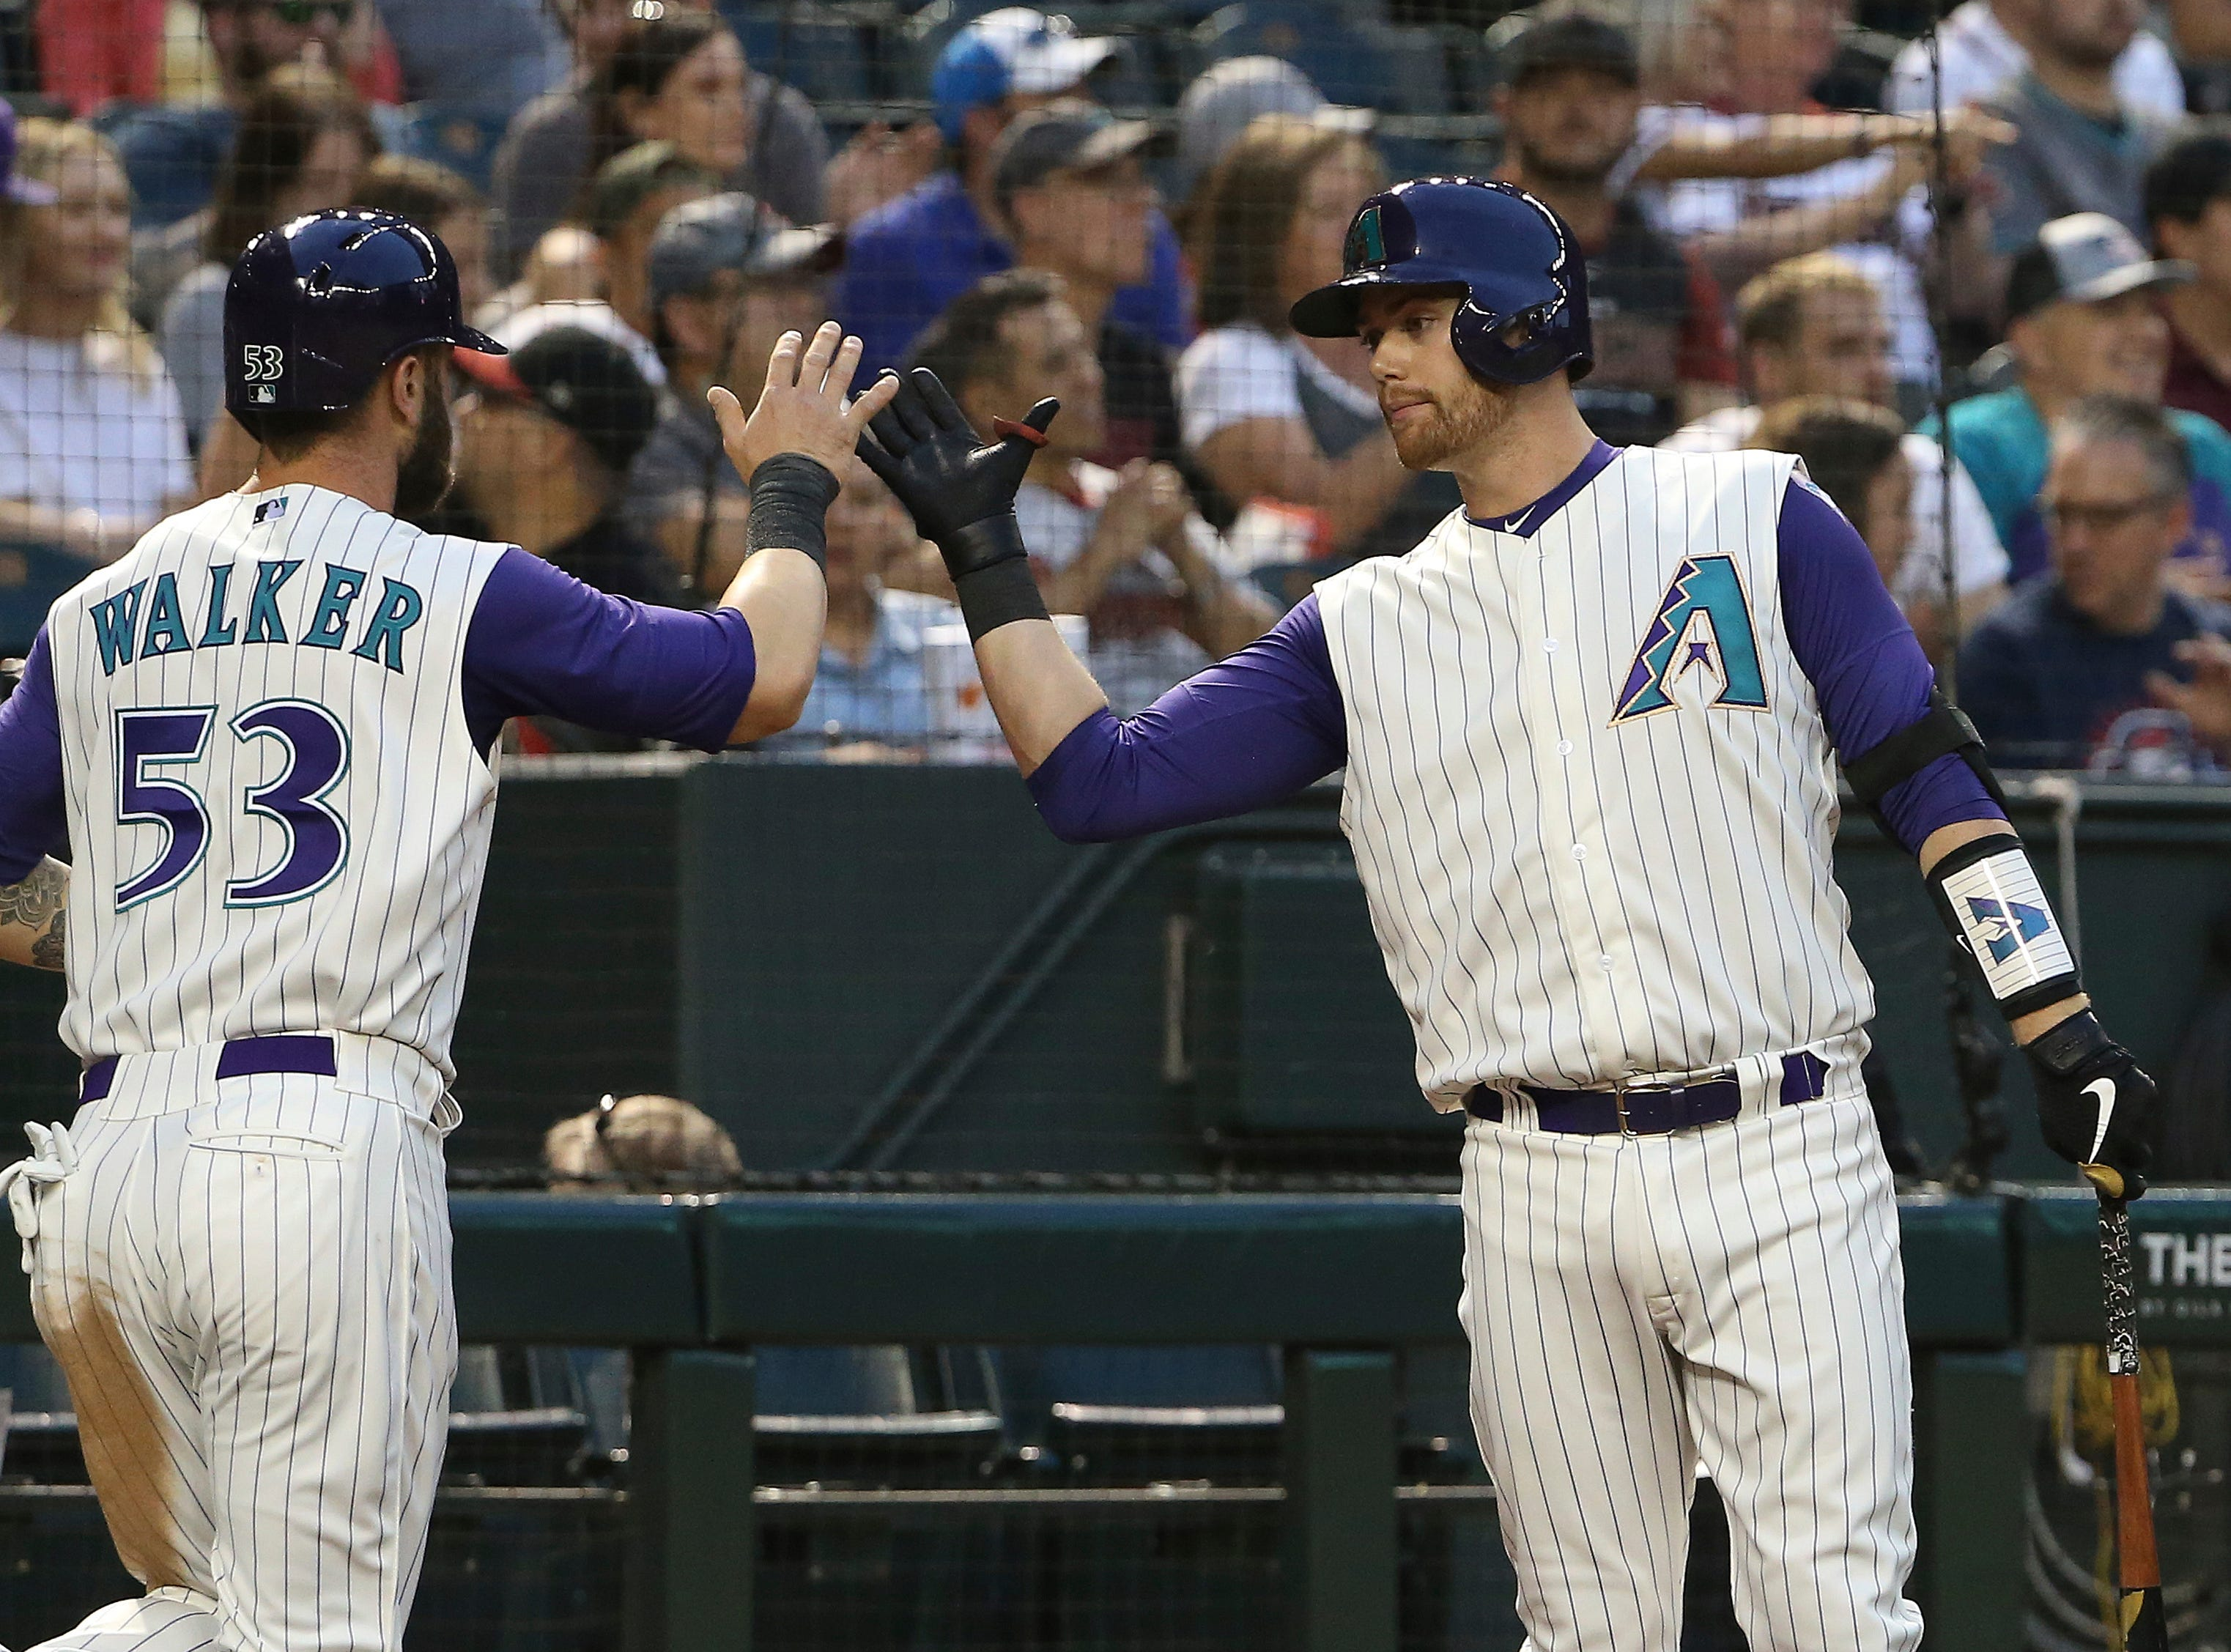 Arizona Diamondbacks' Christian Walker (53) celebrates his run scored against the Atlanta Braves with Carson Kelly, right, during the second inning of a baseball game Thursday, May 9, 2019, in Phoenix. (AP Photo/Ross D. Franklin)